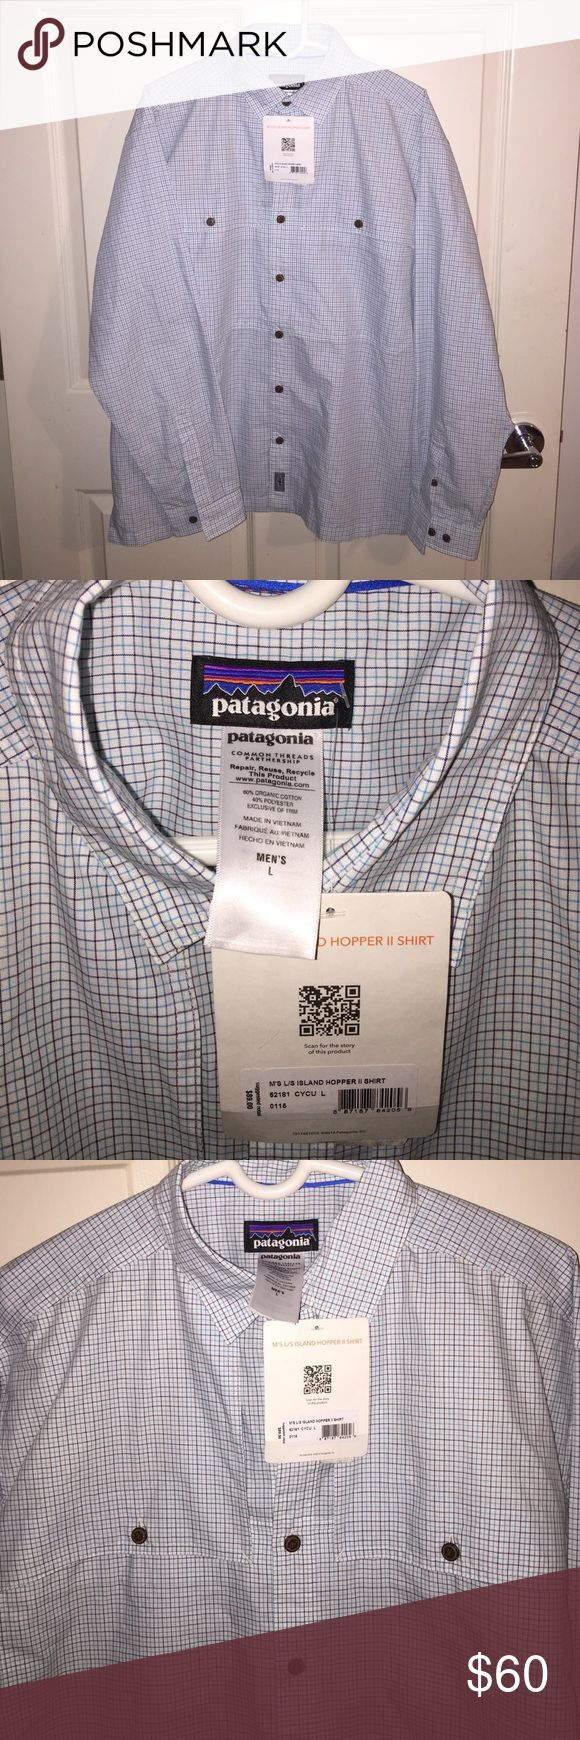 """Patagonia """"Island Hopper II Shirt"""" never worn Patagonia shirt size large, never worn white with blue lines Patagonia Shirts Casual Button Down Shirts"""